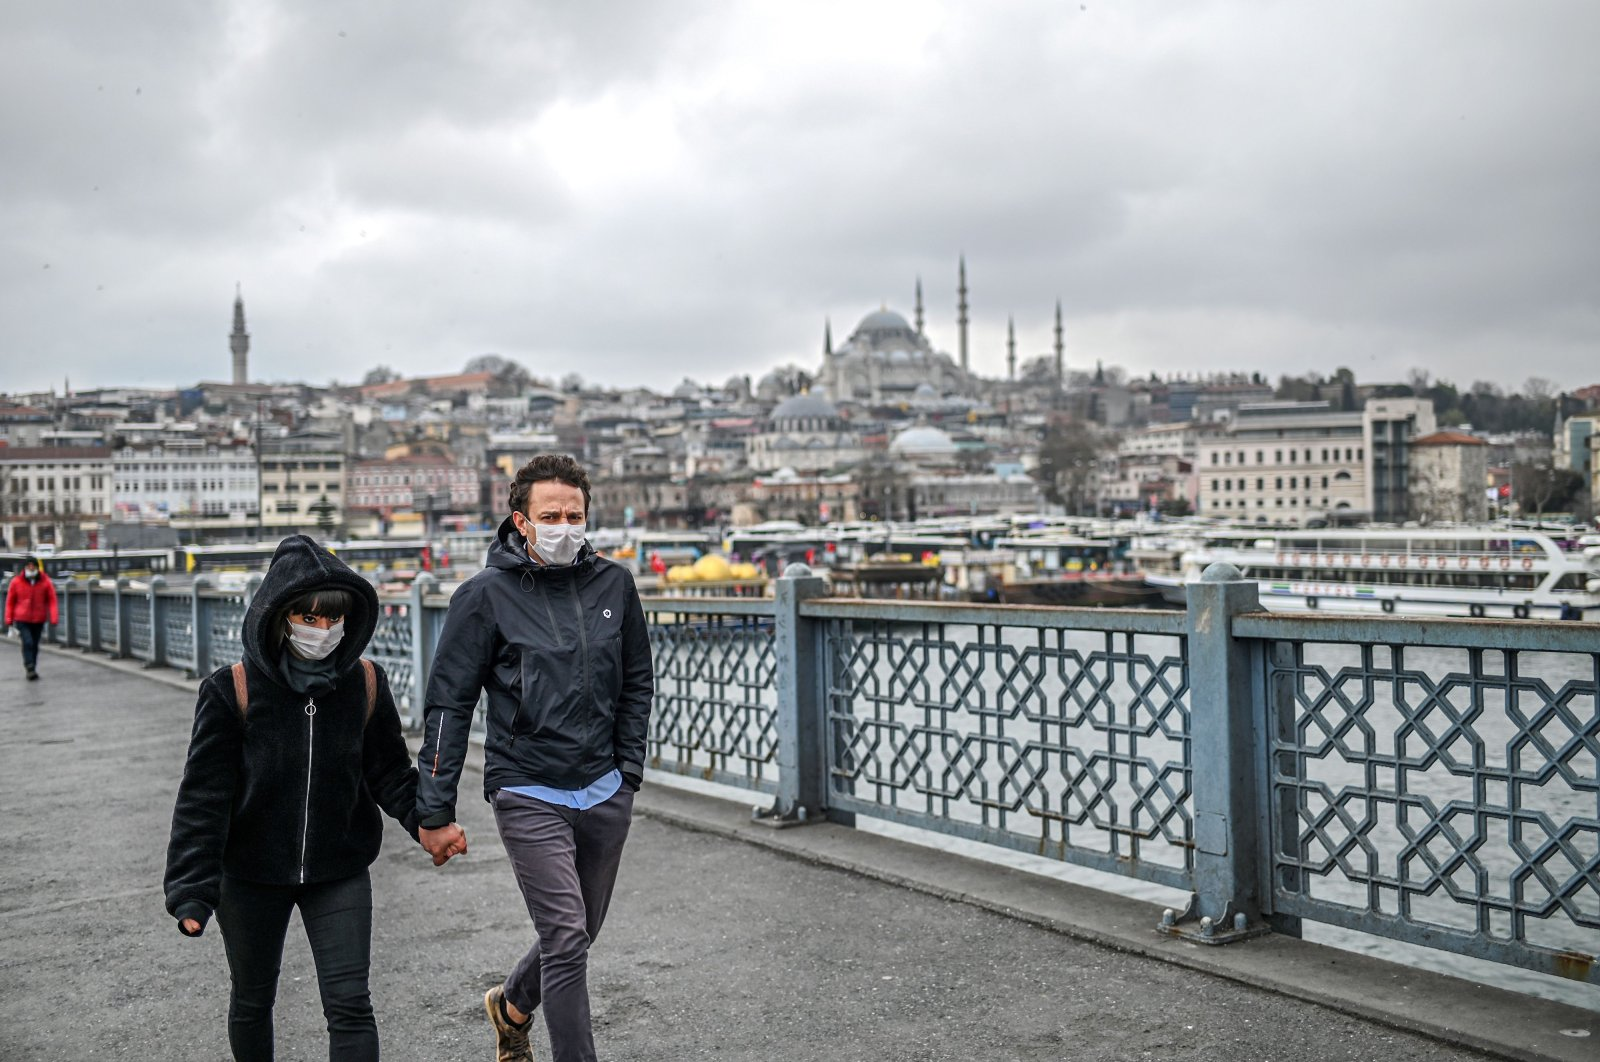 A couple holding hands and wearing face masks walk across the empty Galata bridge, on Wednesday, April 1, 2020 (AFP Photo)